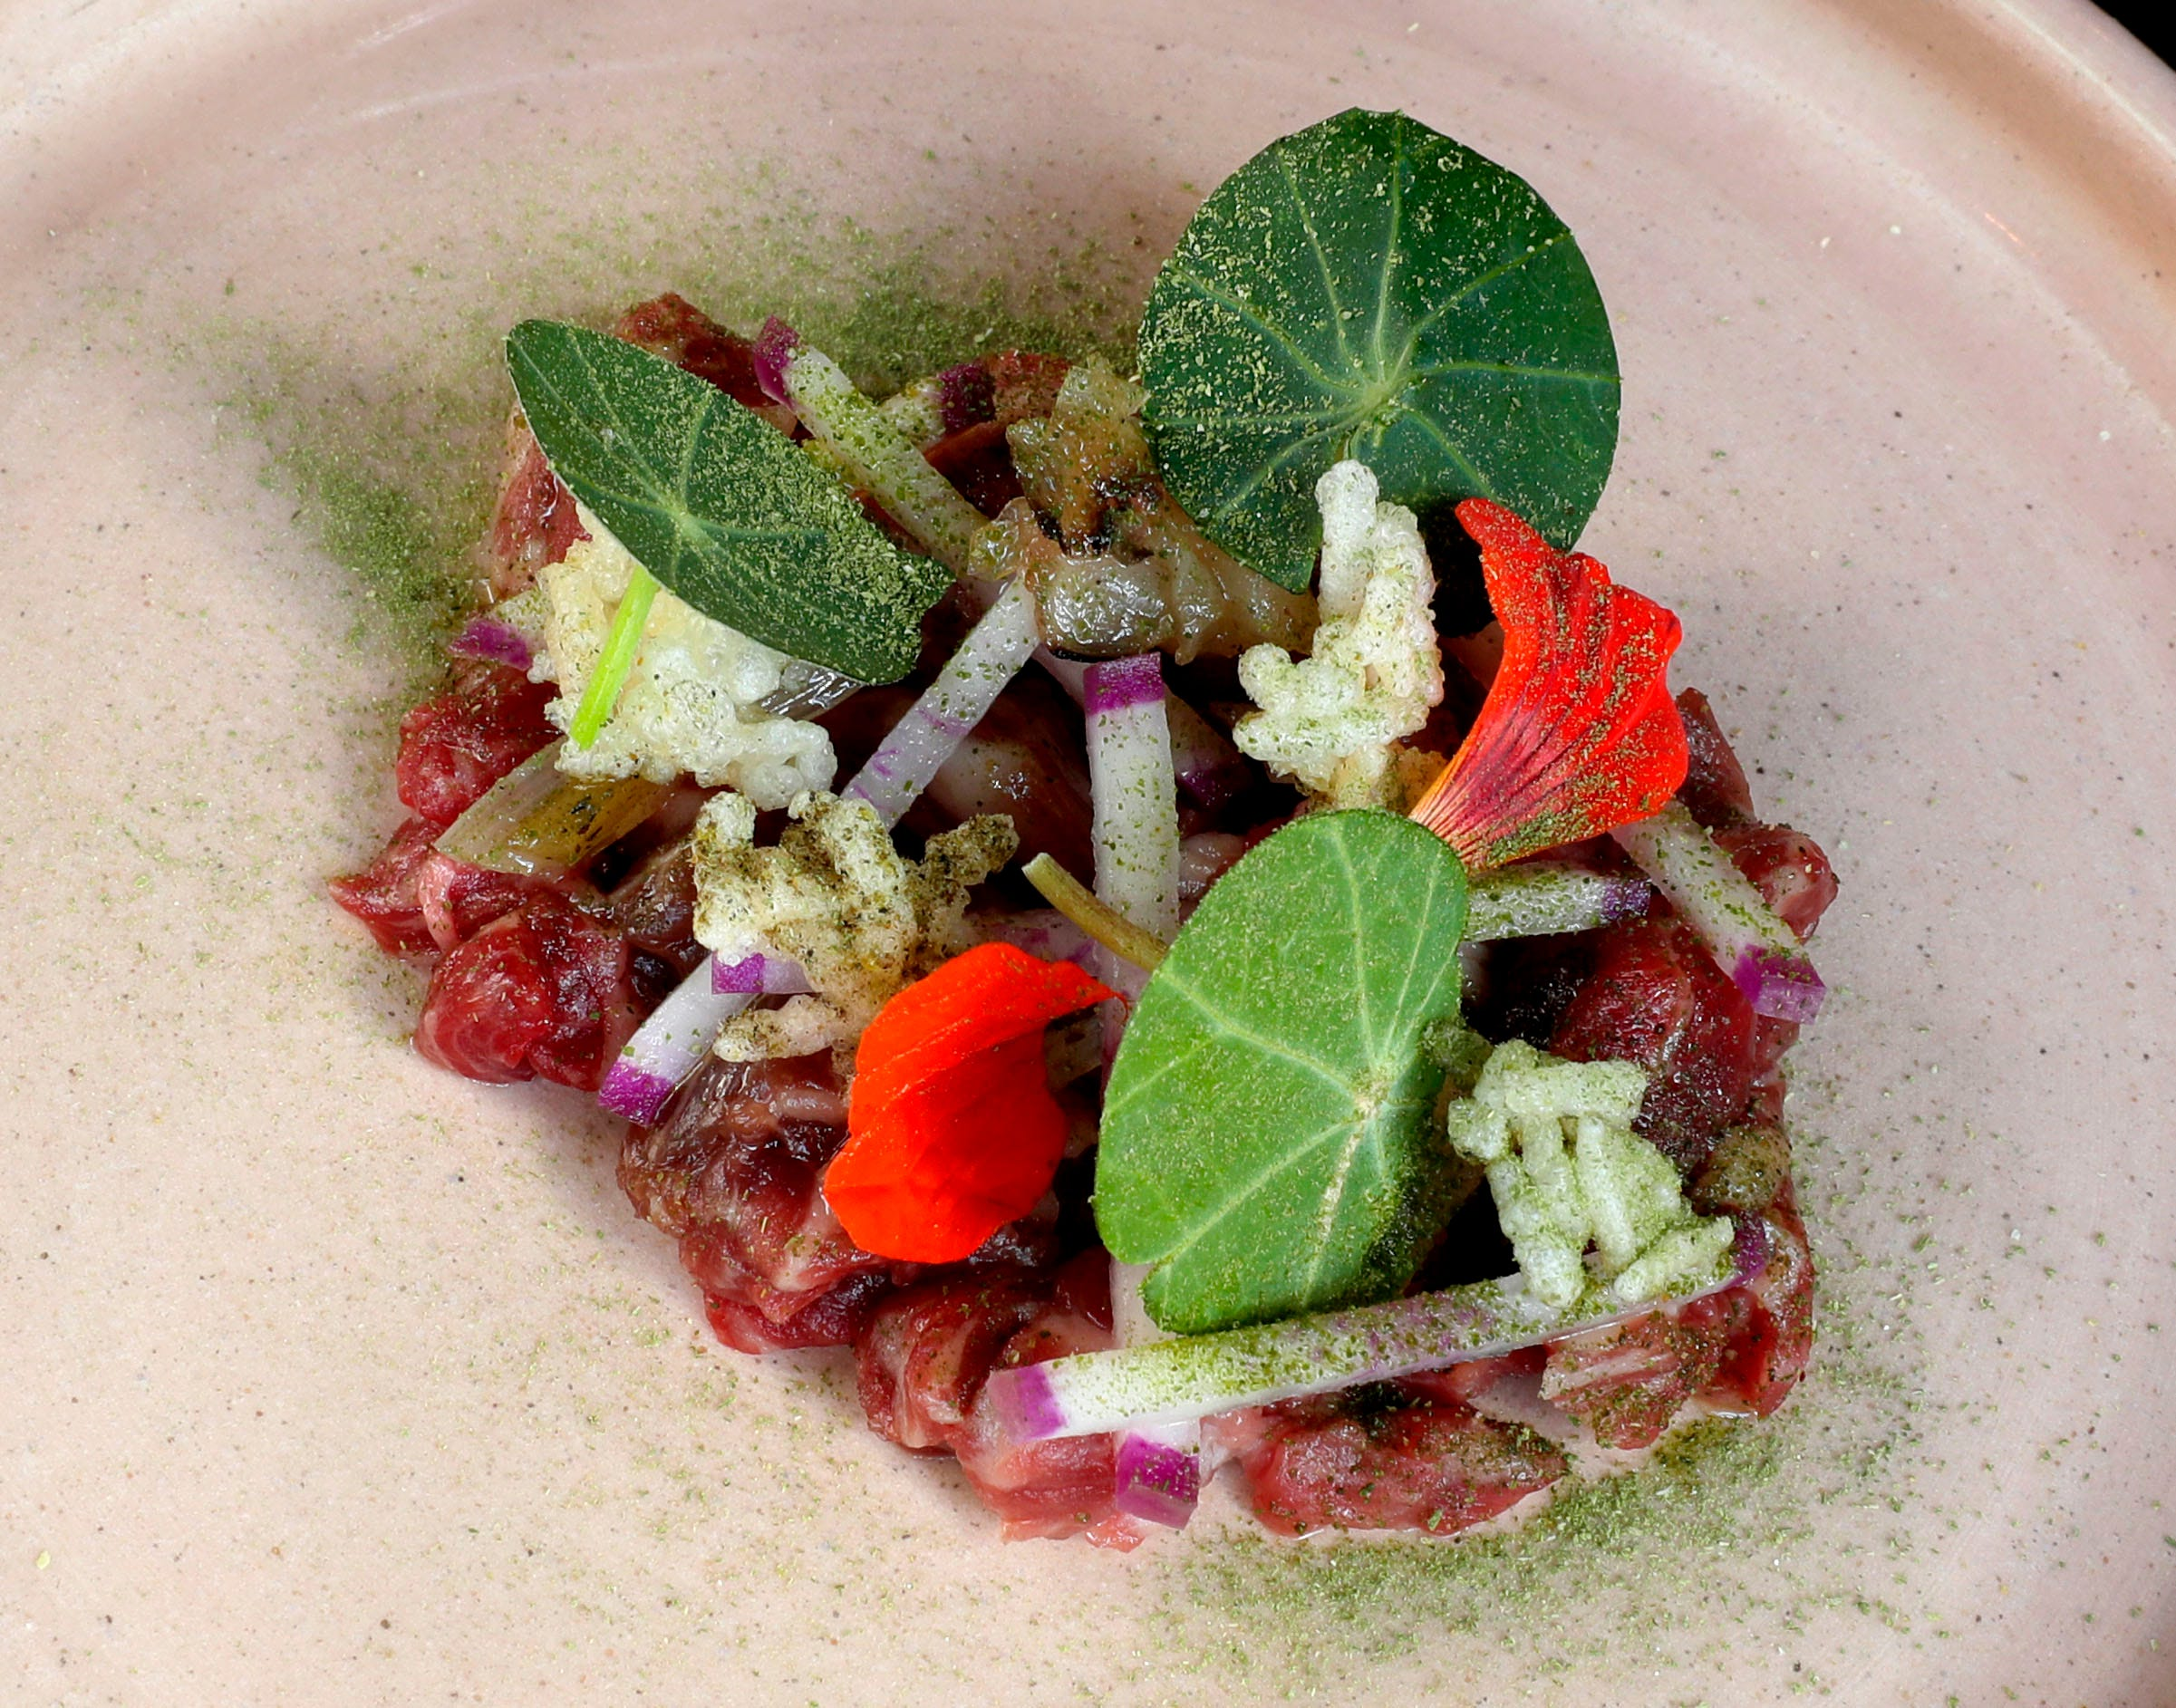 Steak tartare made with ramps, XO sauce, pickled onions and rice was a recent item offered at Esterev.